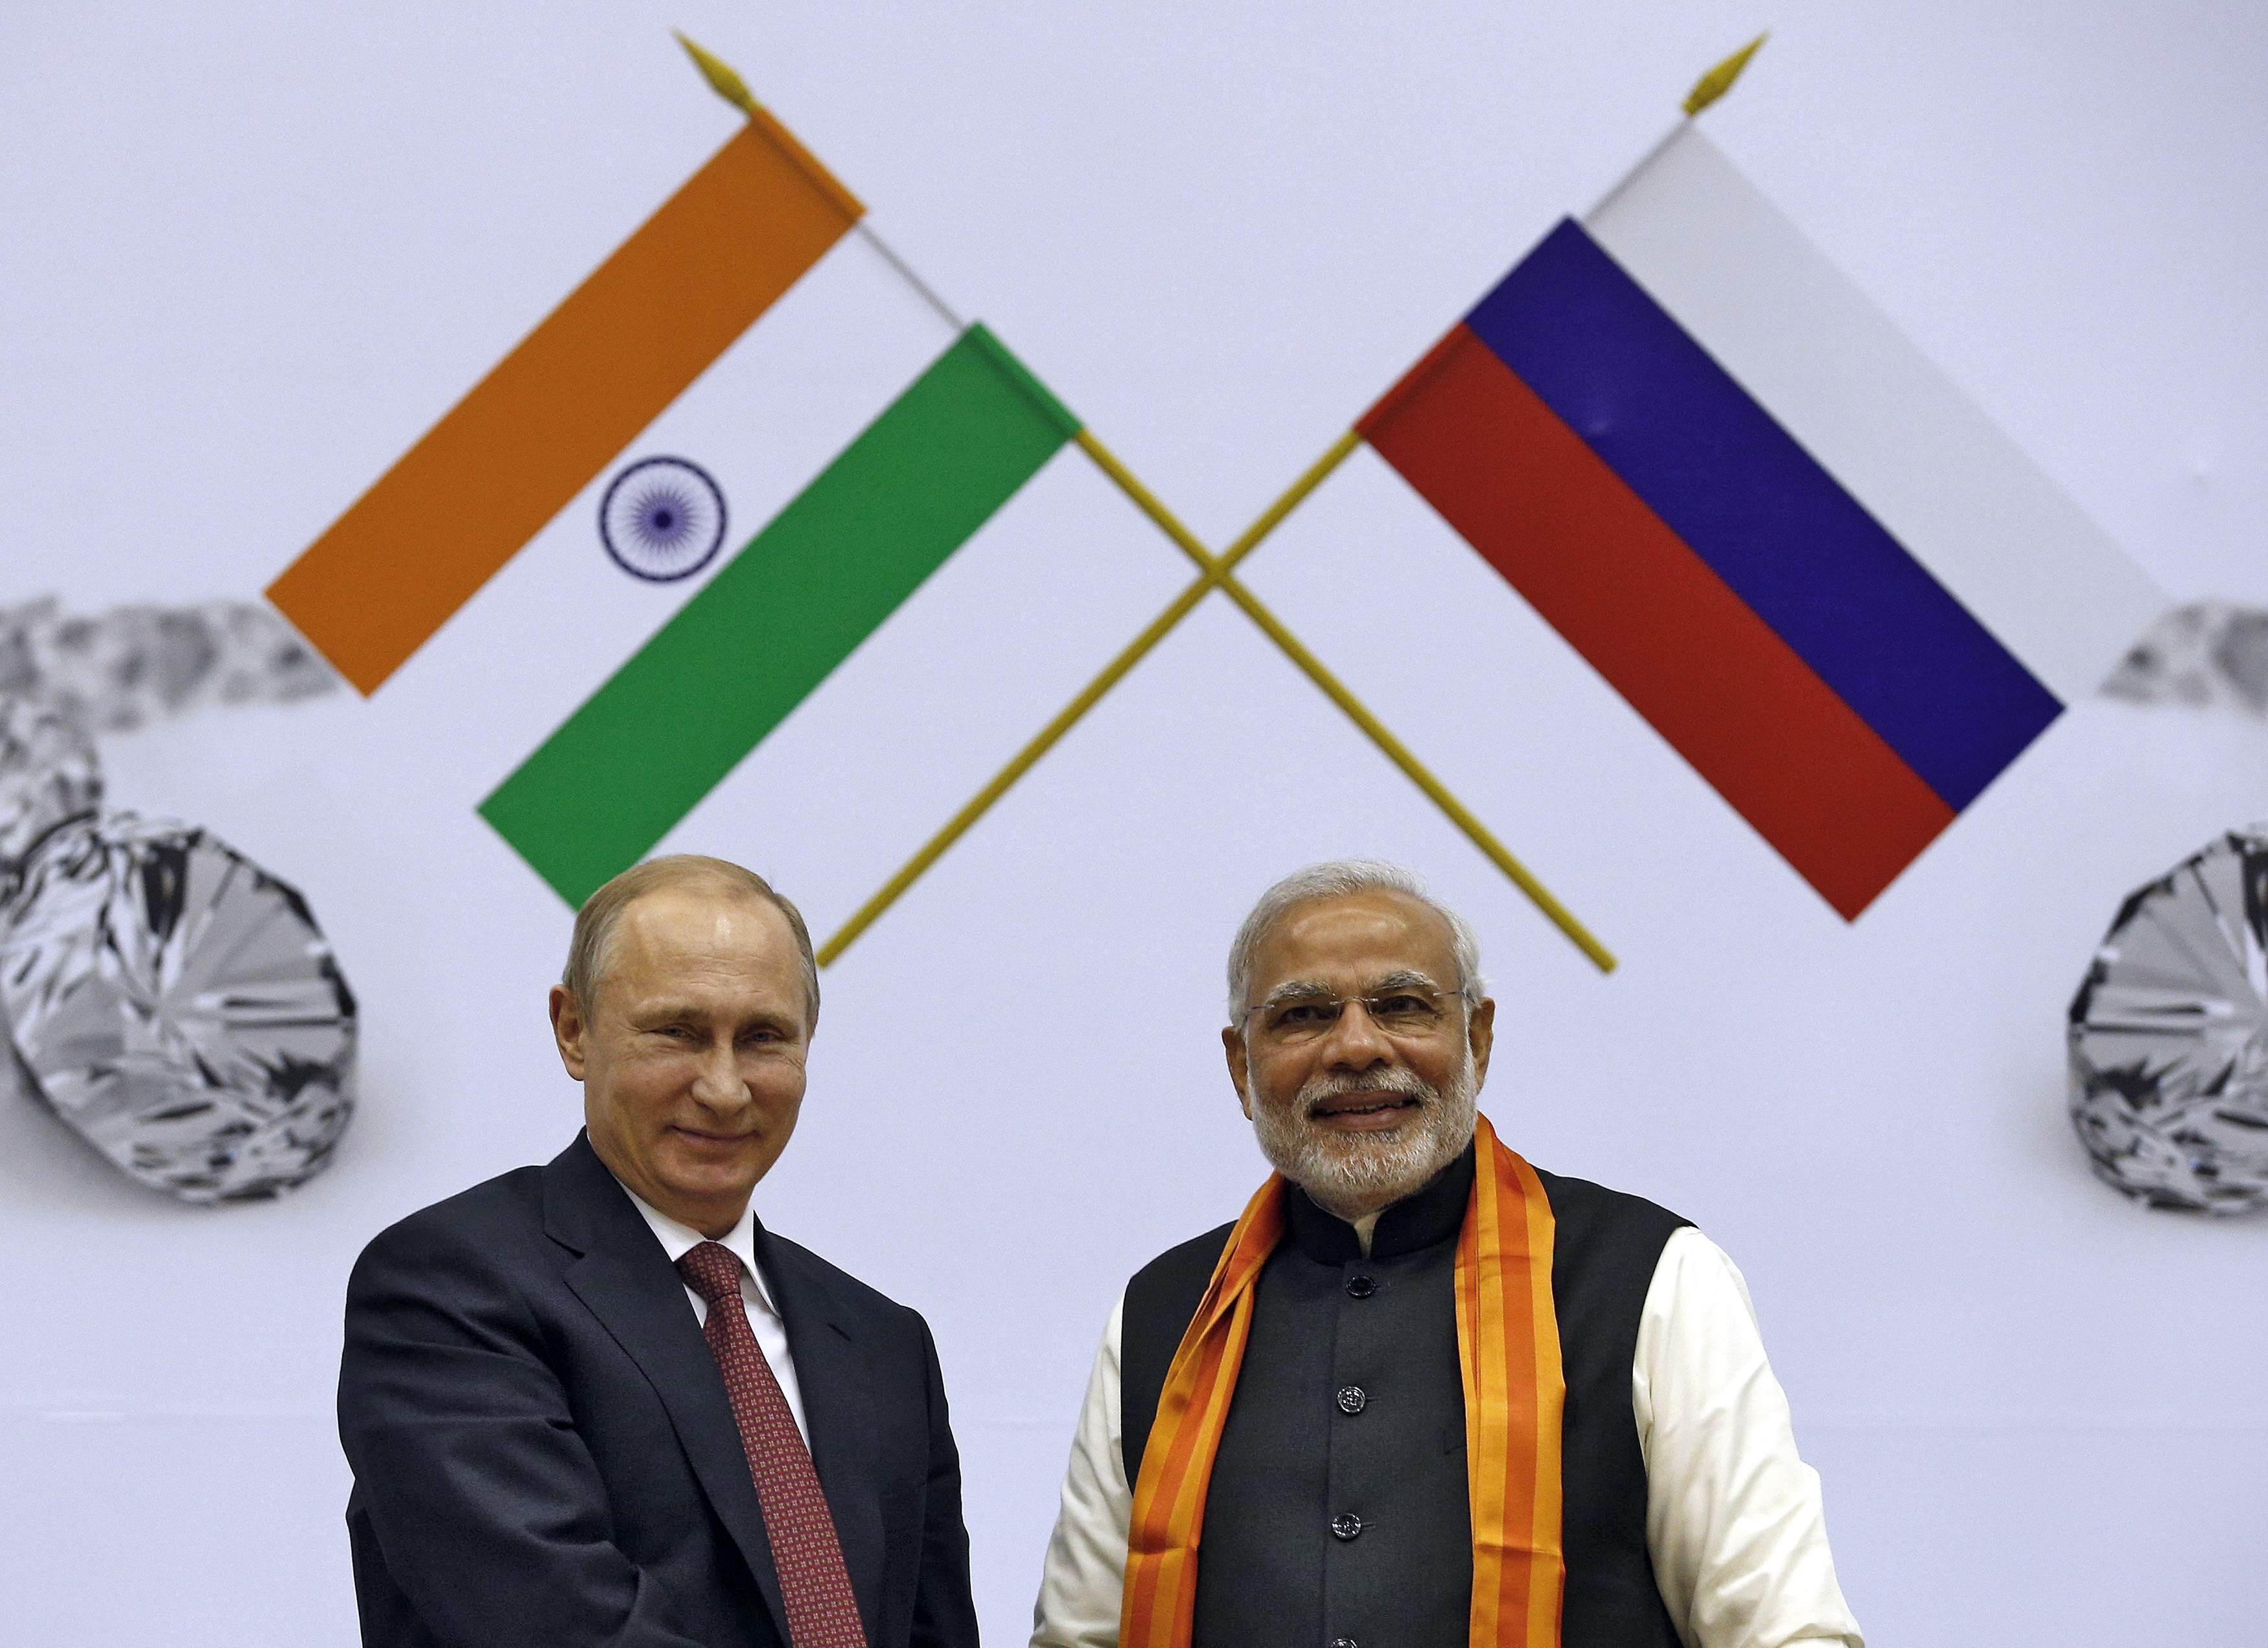 Russia-India: Putin agrees to build 10 nuclear reactors